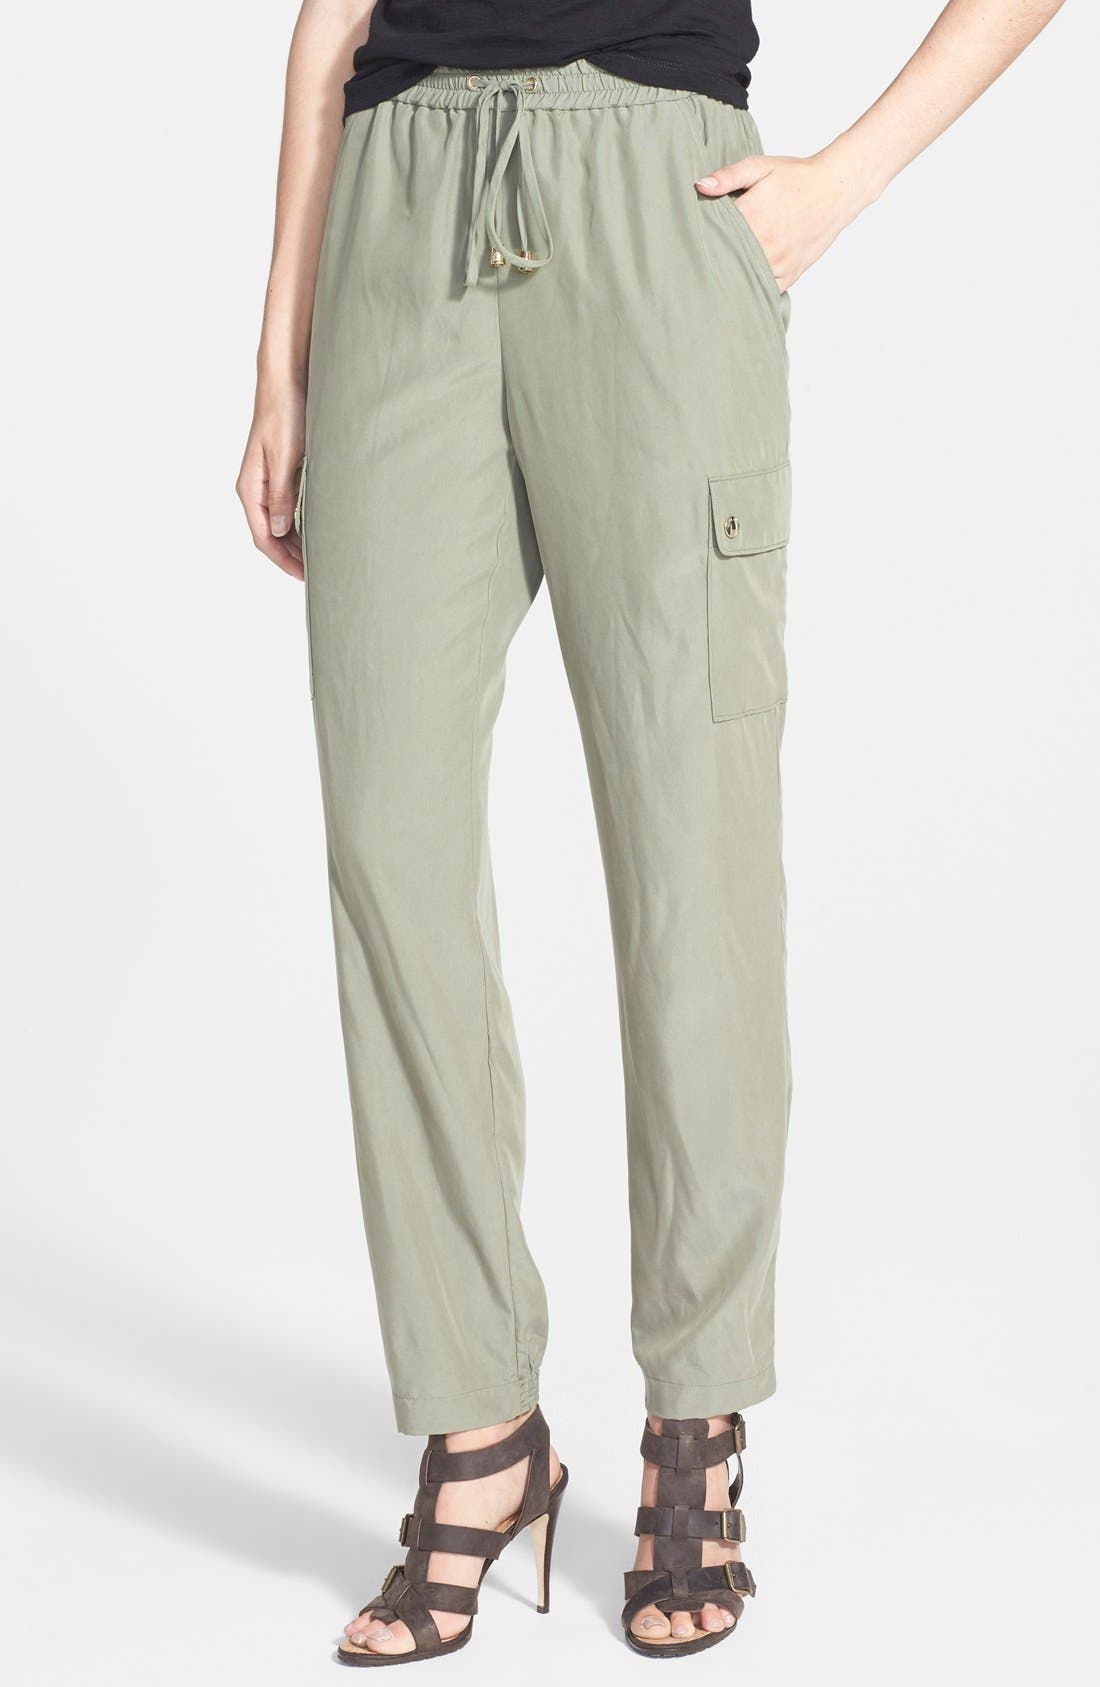 Alternate Image 1 Selected - Two by Vince Camuto Cargo Pocket Track Pants